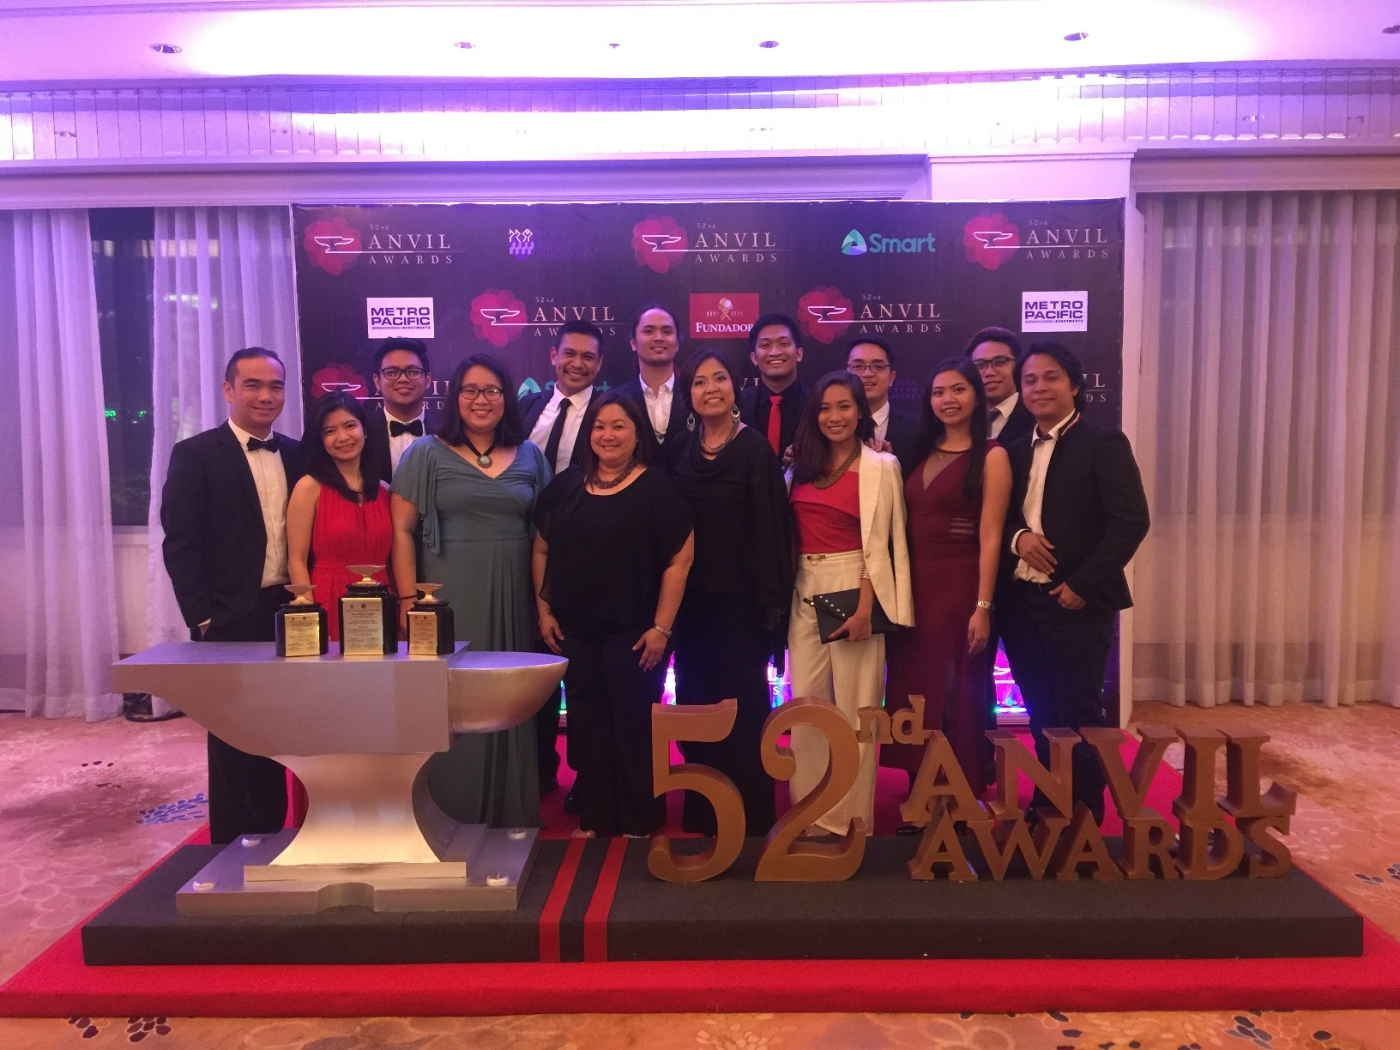 Pru Life UK's Brand and Communications team, led by Assistant Vice President Anna Gizelle V. Camua (front row, fourth from the right), received three honors at the 52nd Anvil Award Gabi ng Parangal at the Makati Shangri-La on March 10, 2017.